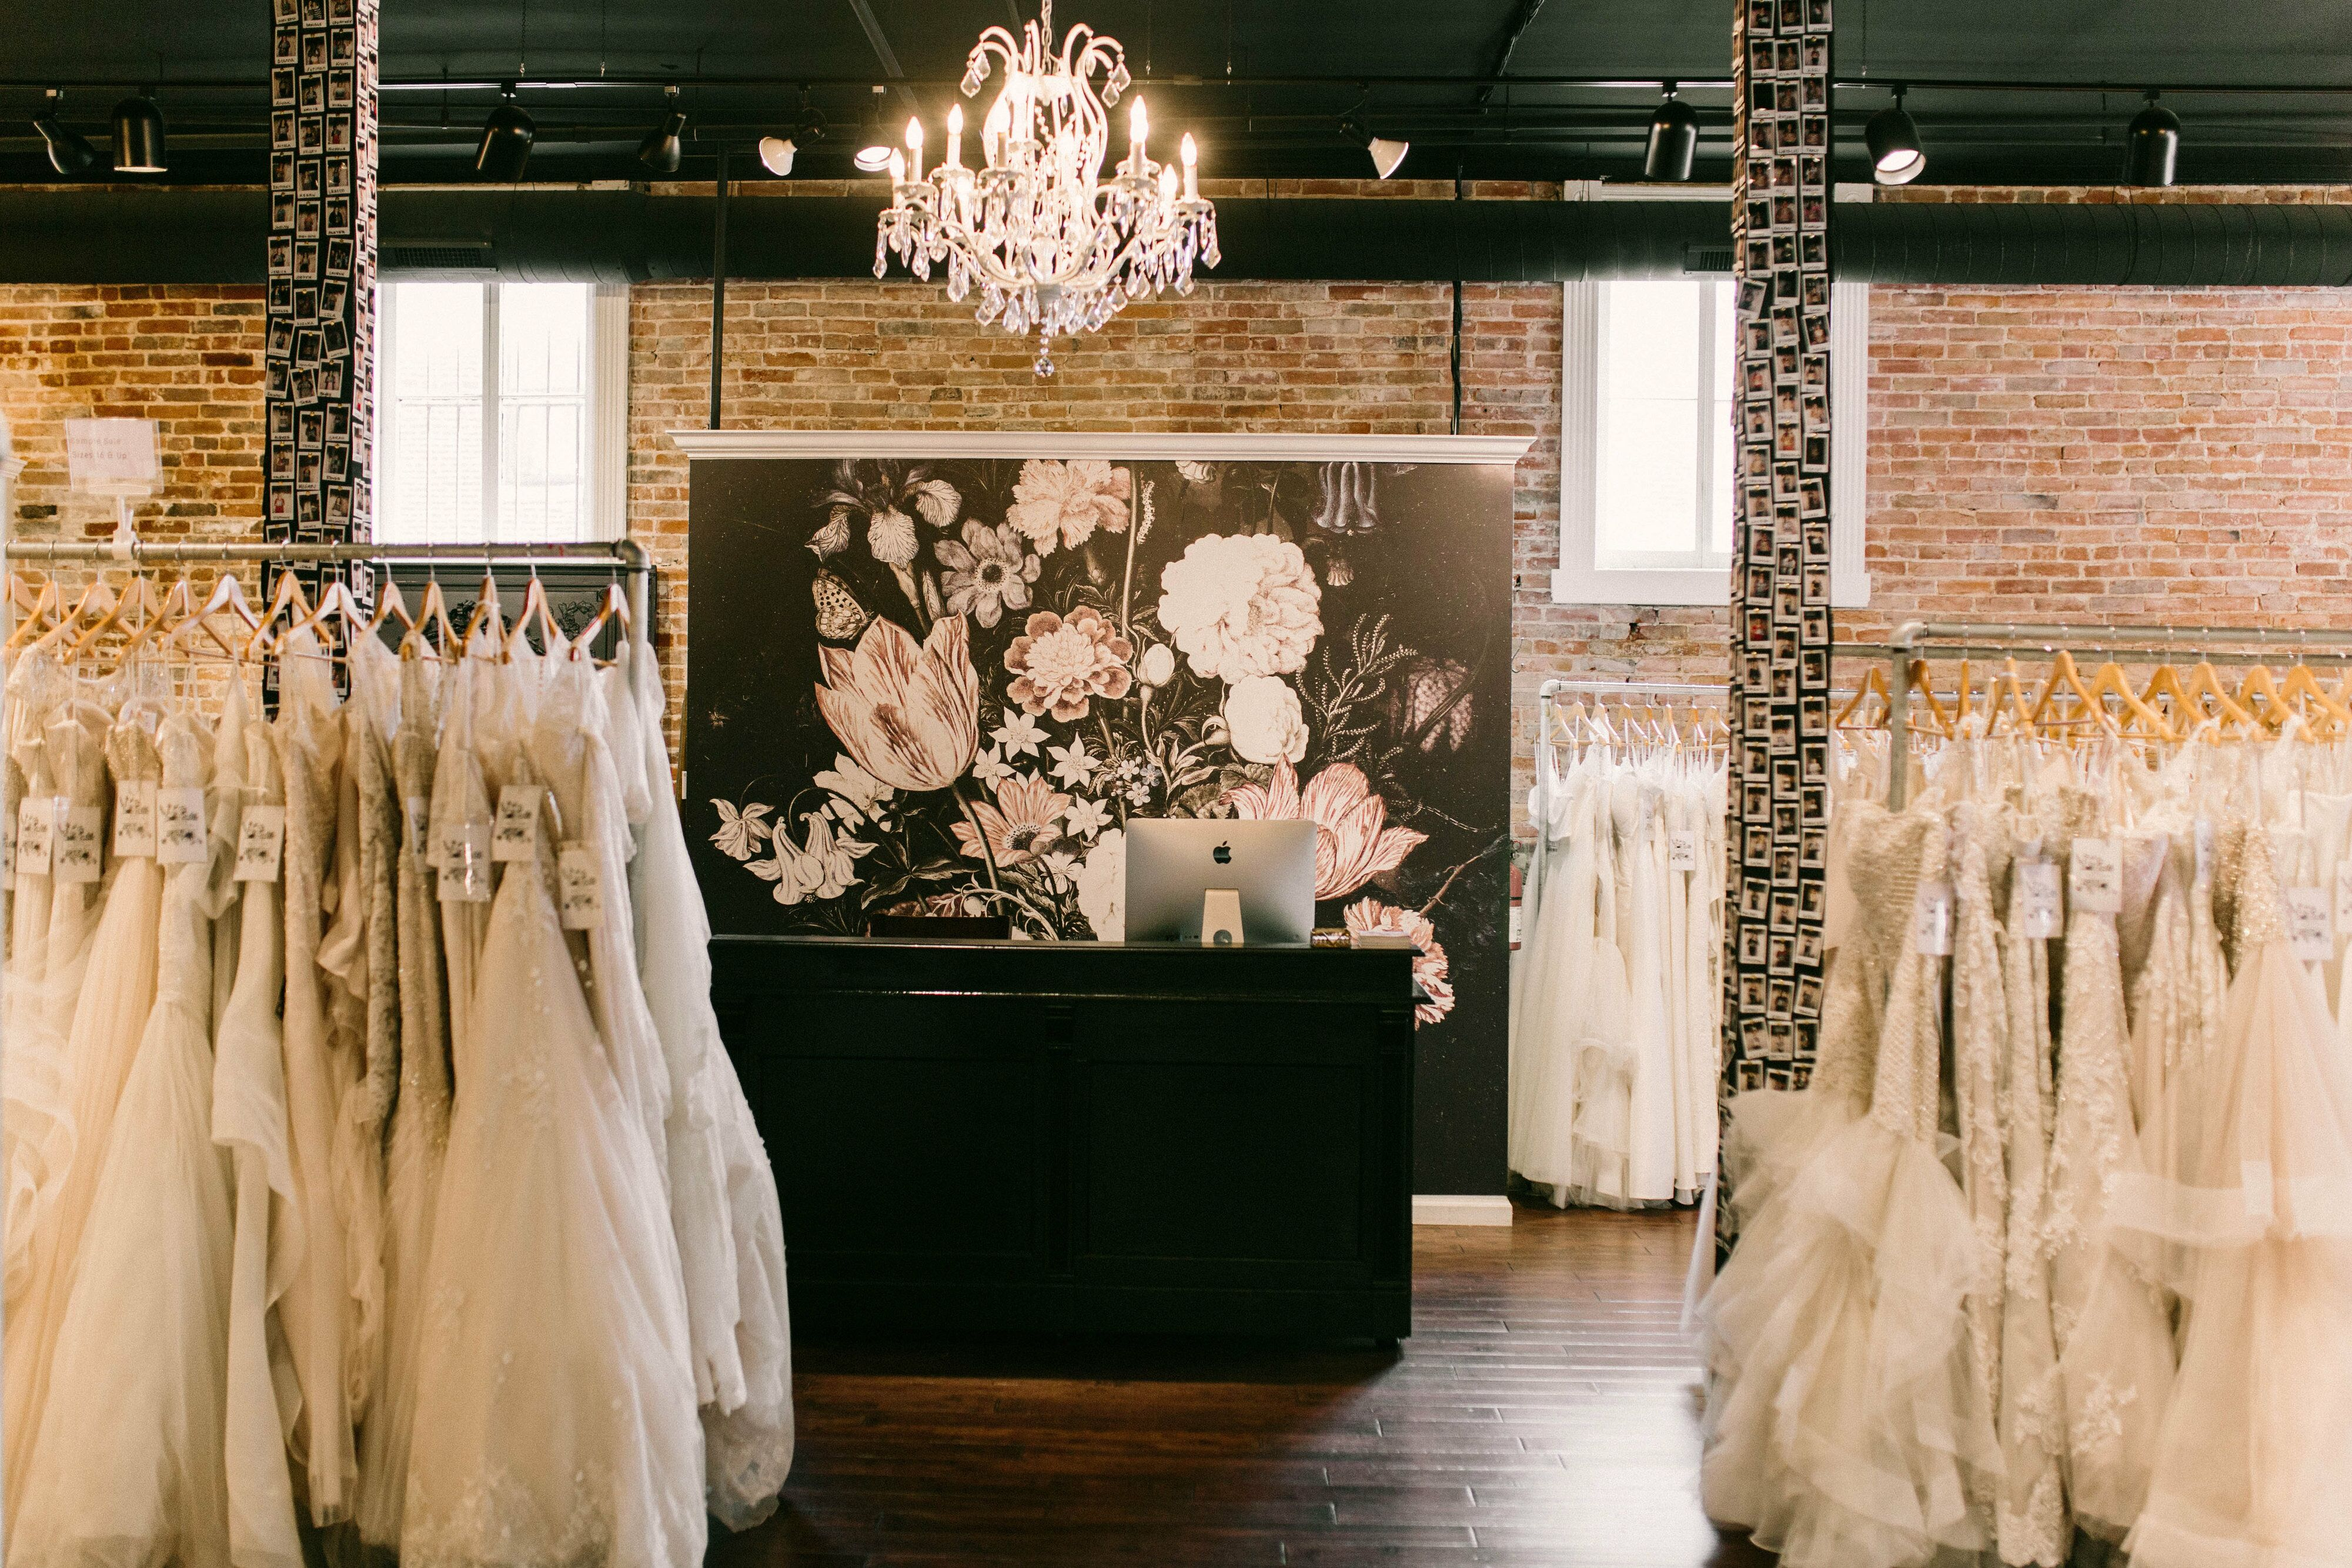 The 20 Best O'fallon, MO Bridal Salons   The Knot